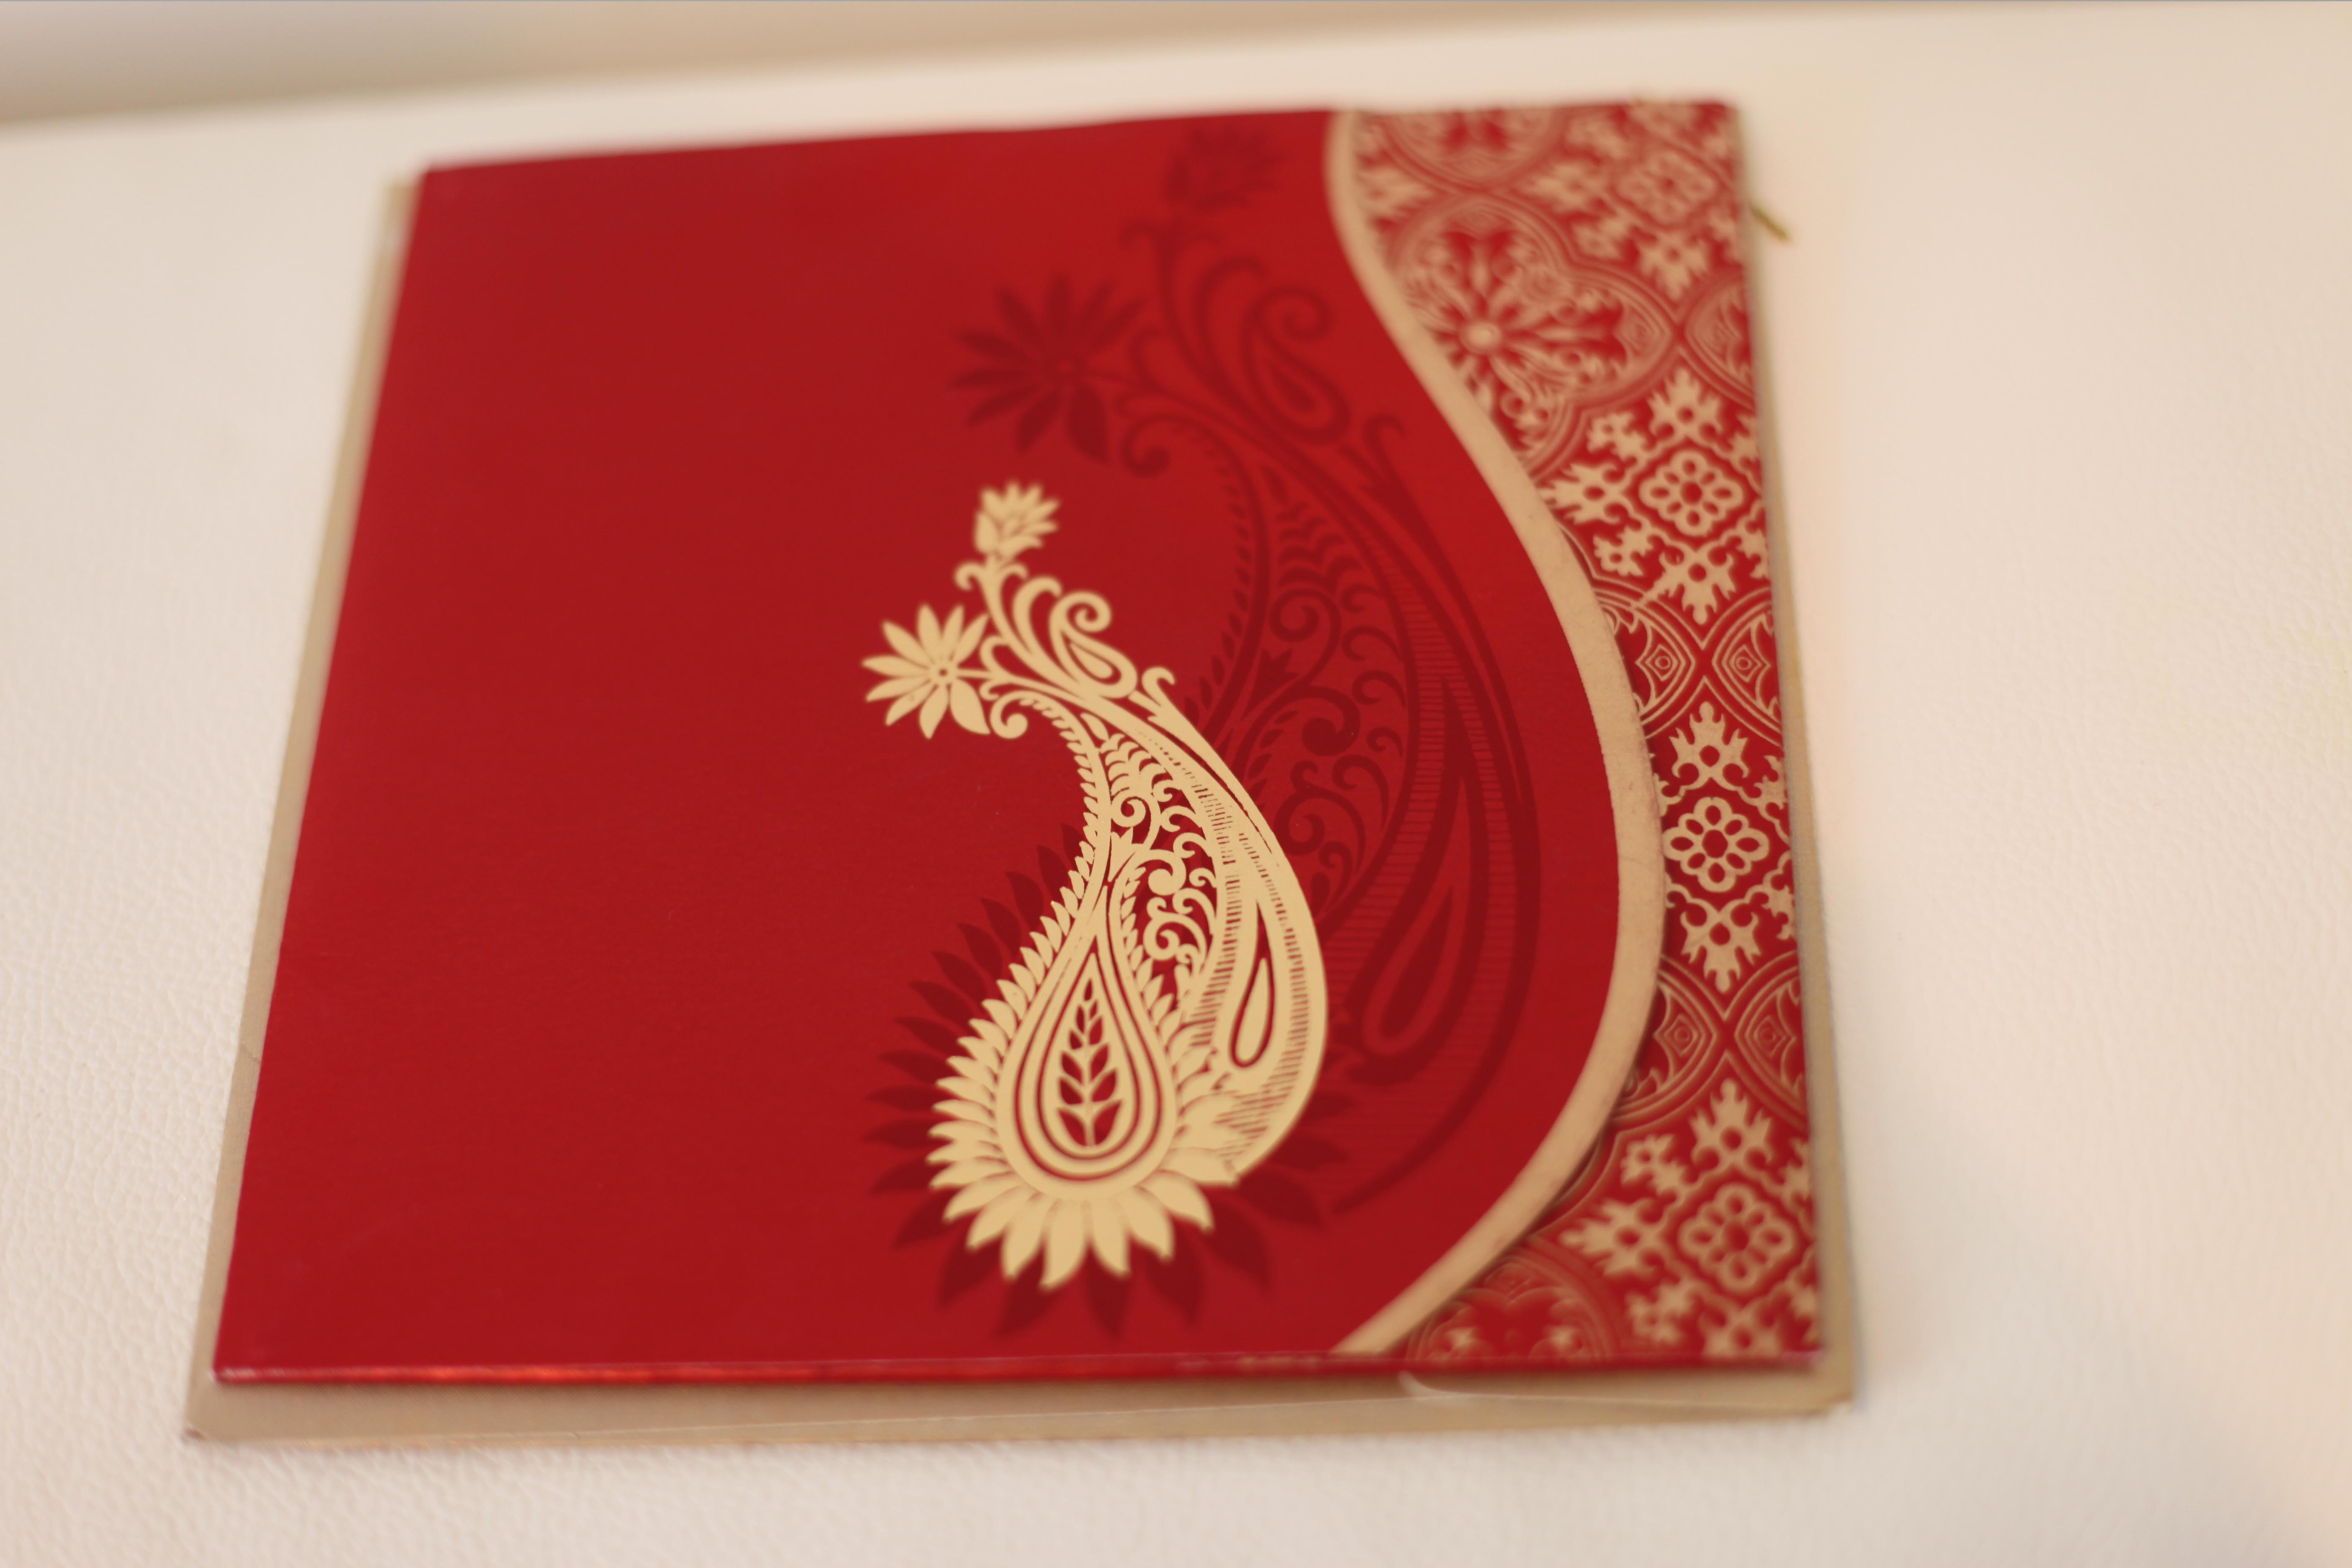 Hindu wedding Cards is a well known brand in the UK